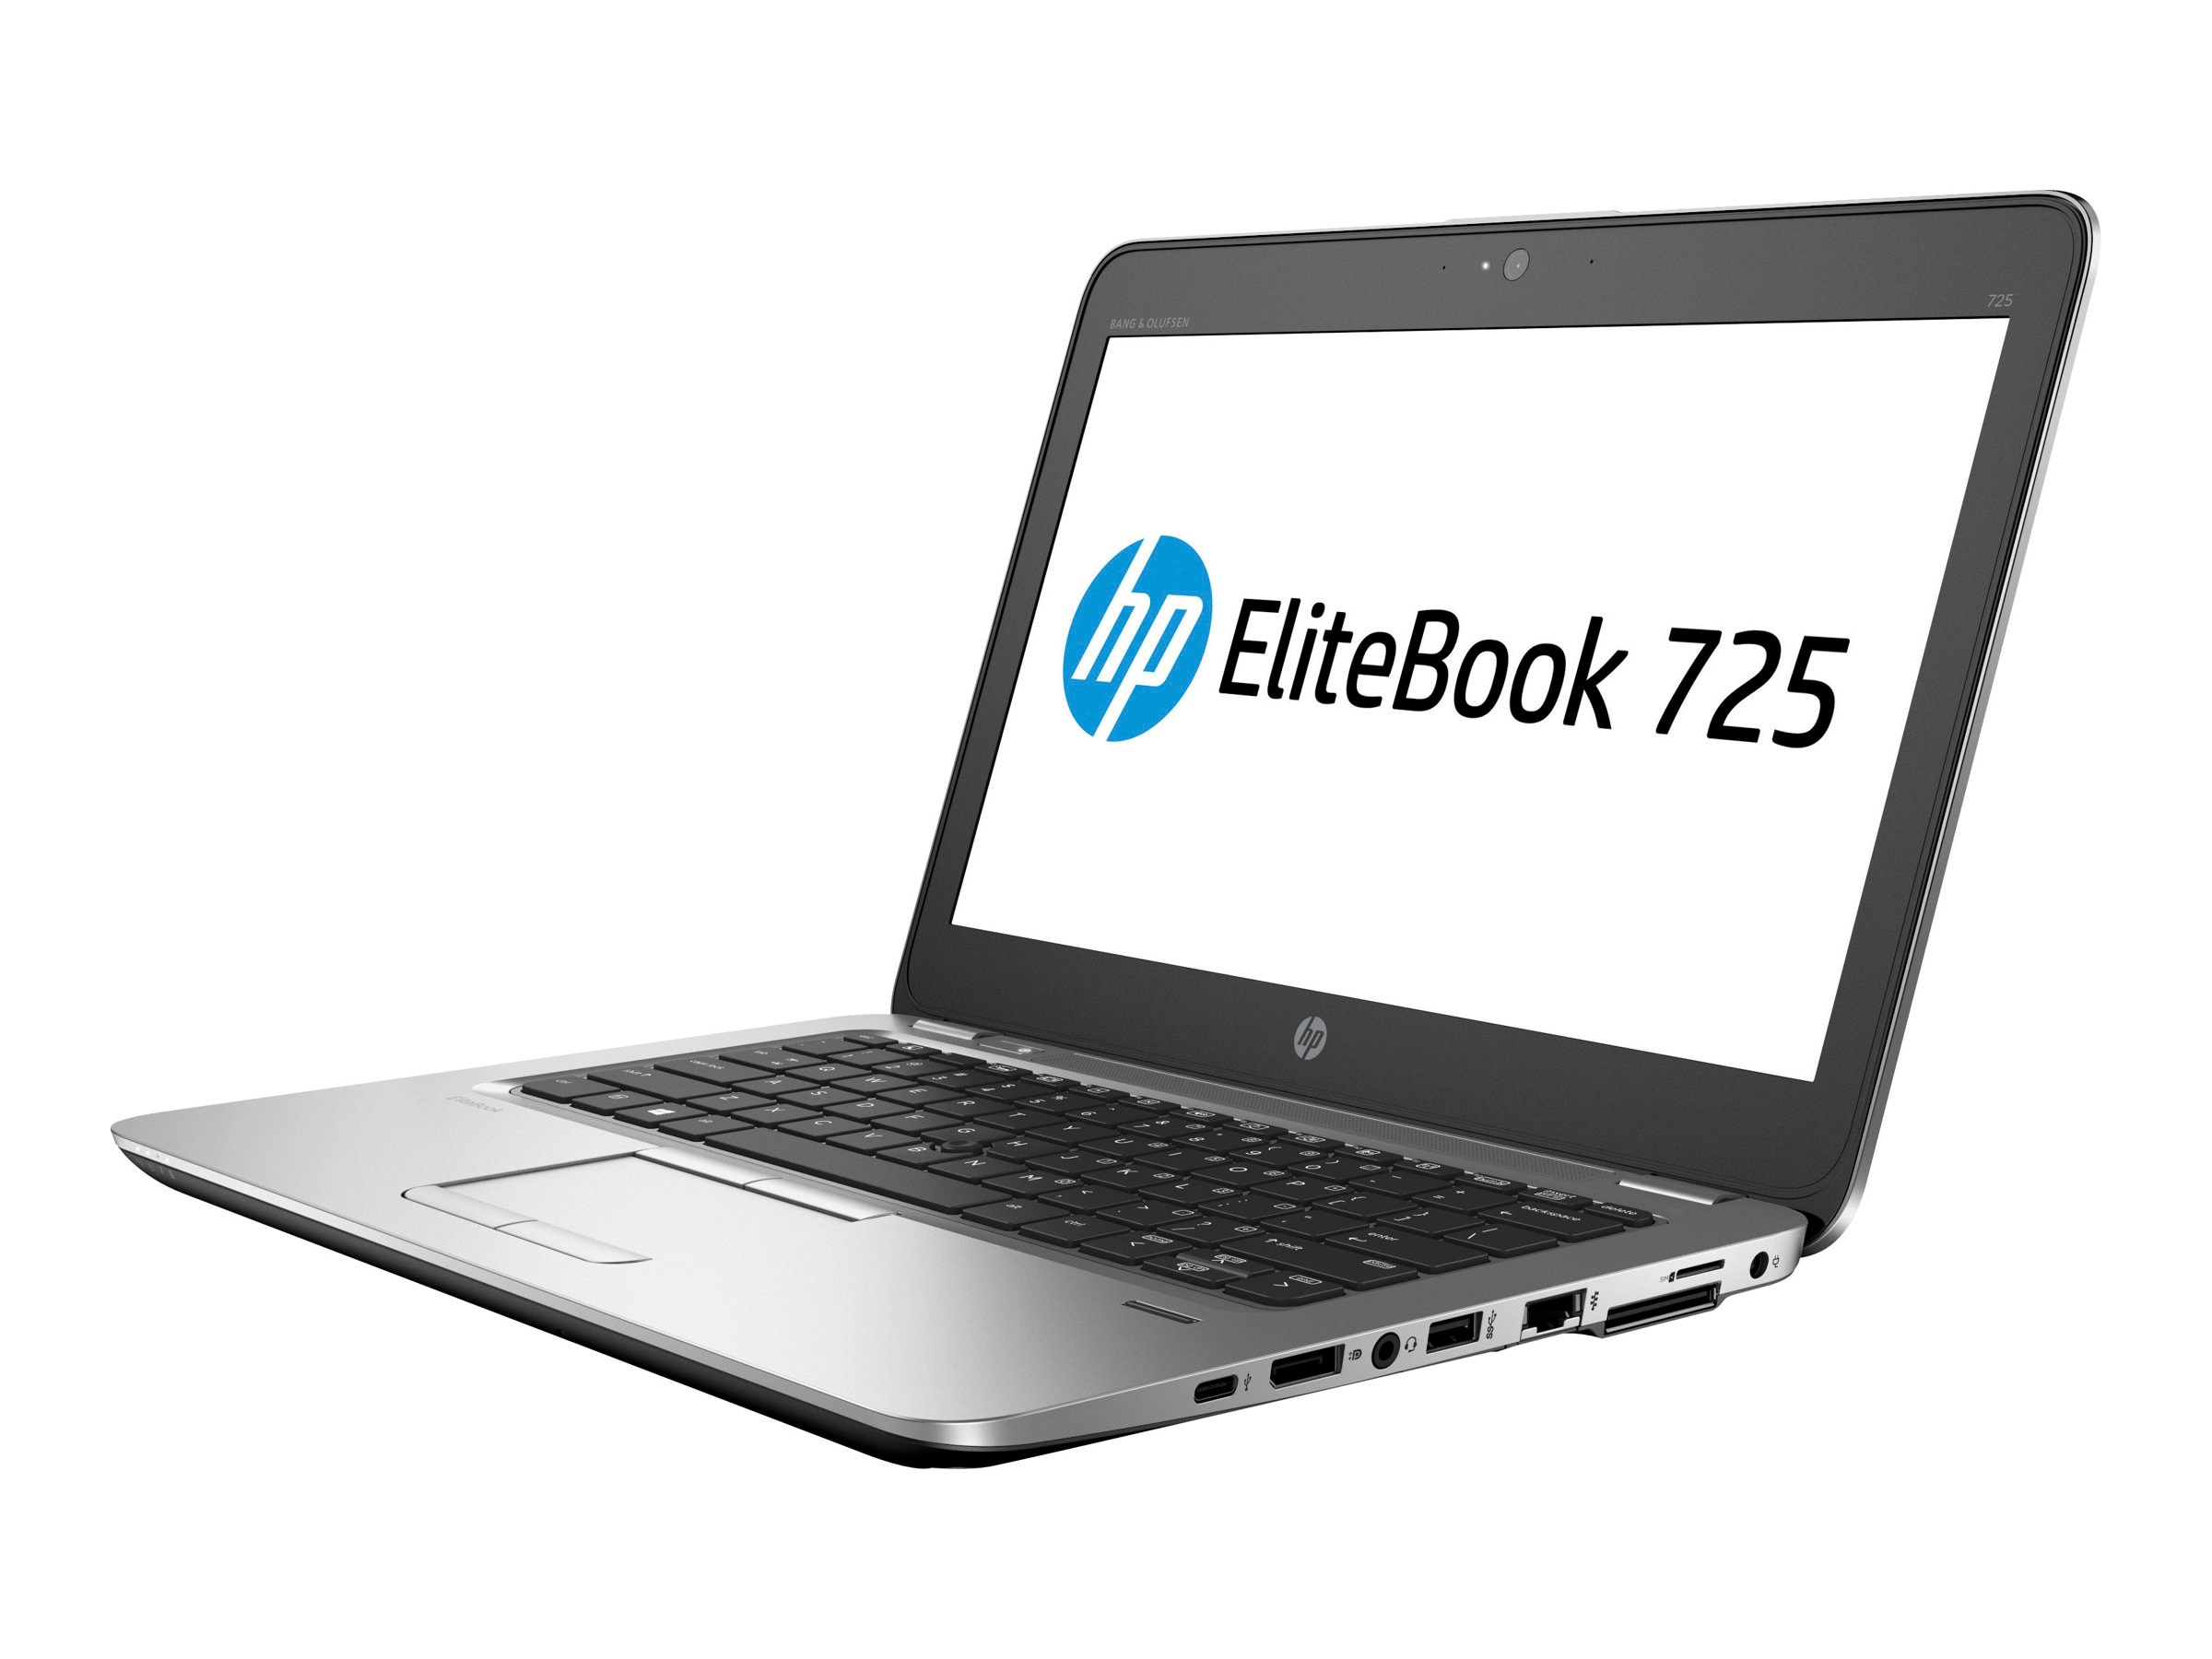 HP EliteBook 725 G3 1.8GHz A10 Pro 12.5in display, P3A09AW#ABA